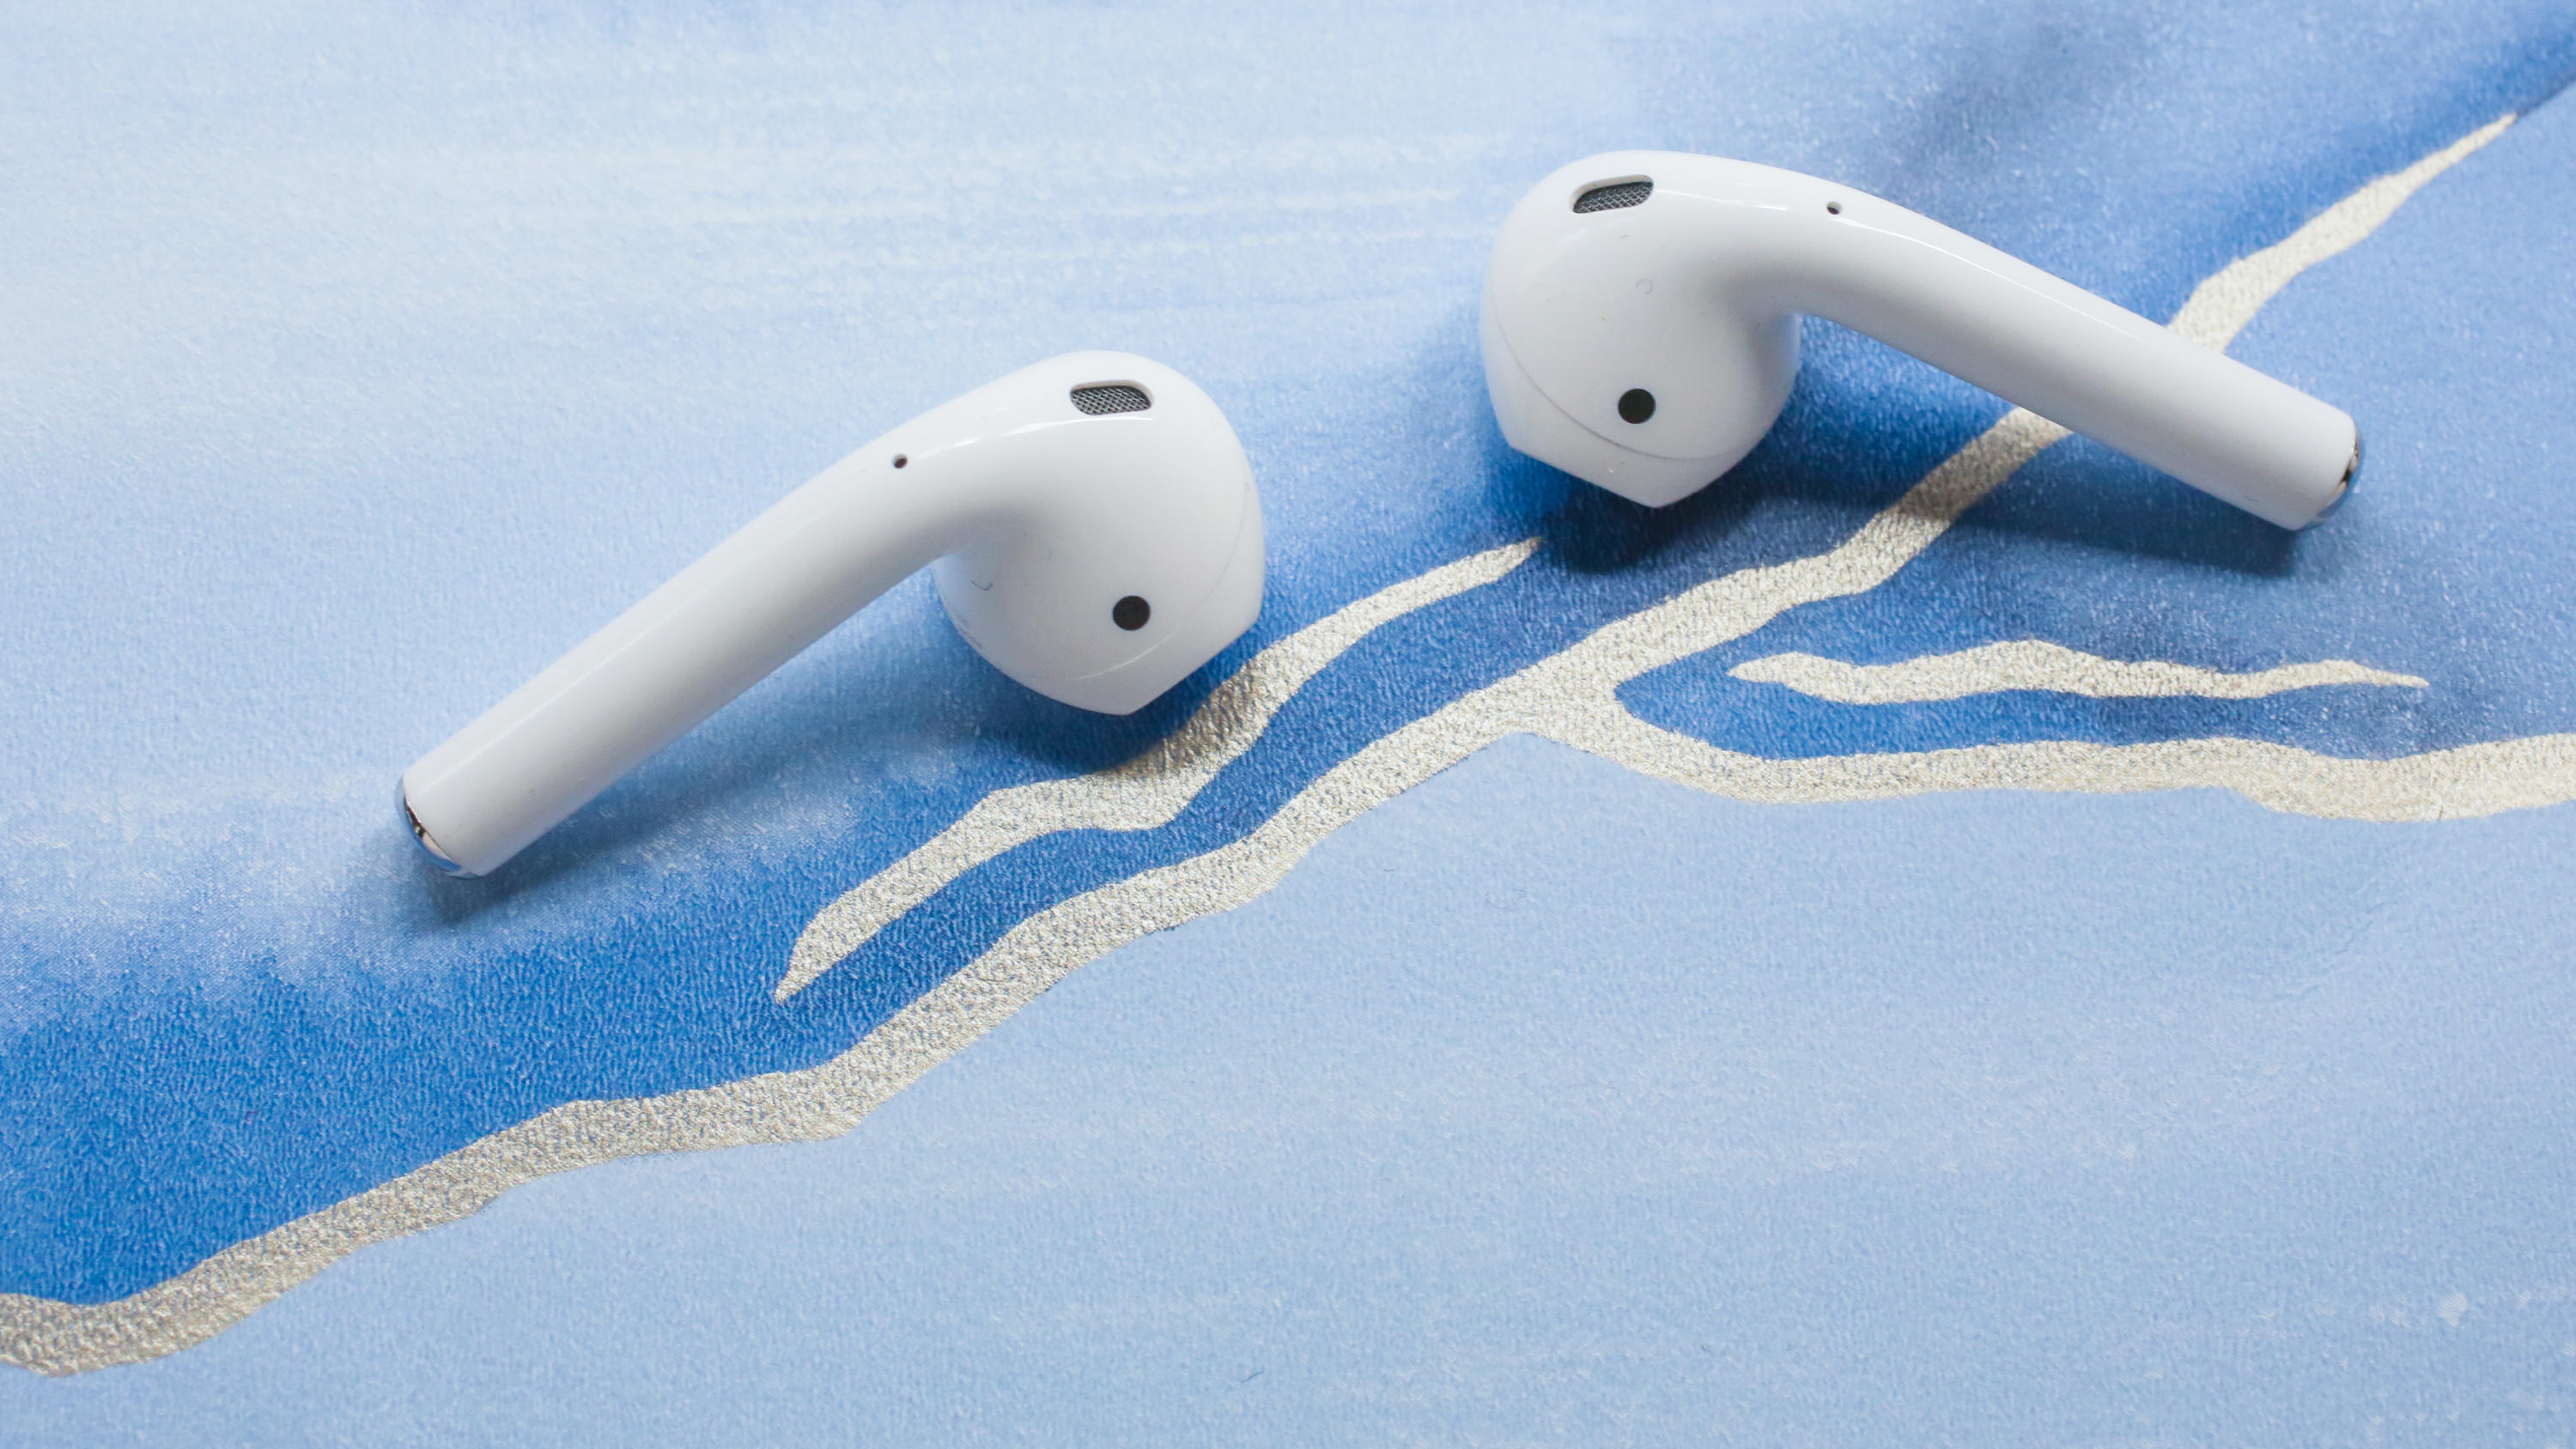 09-apple-airpods-2-2019